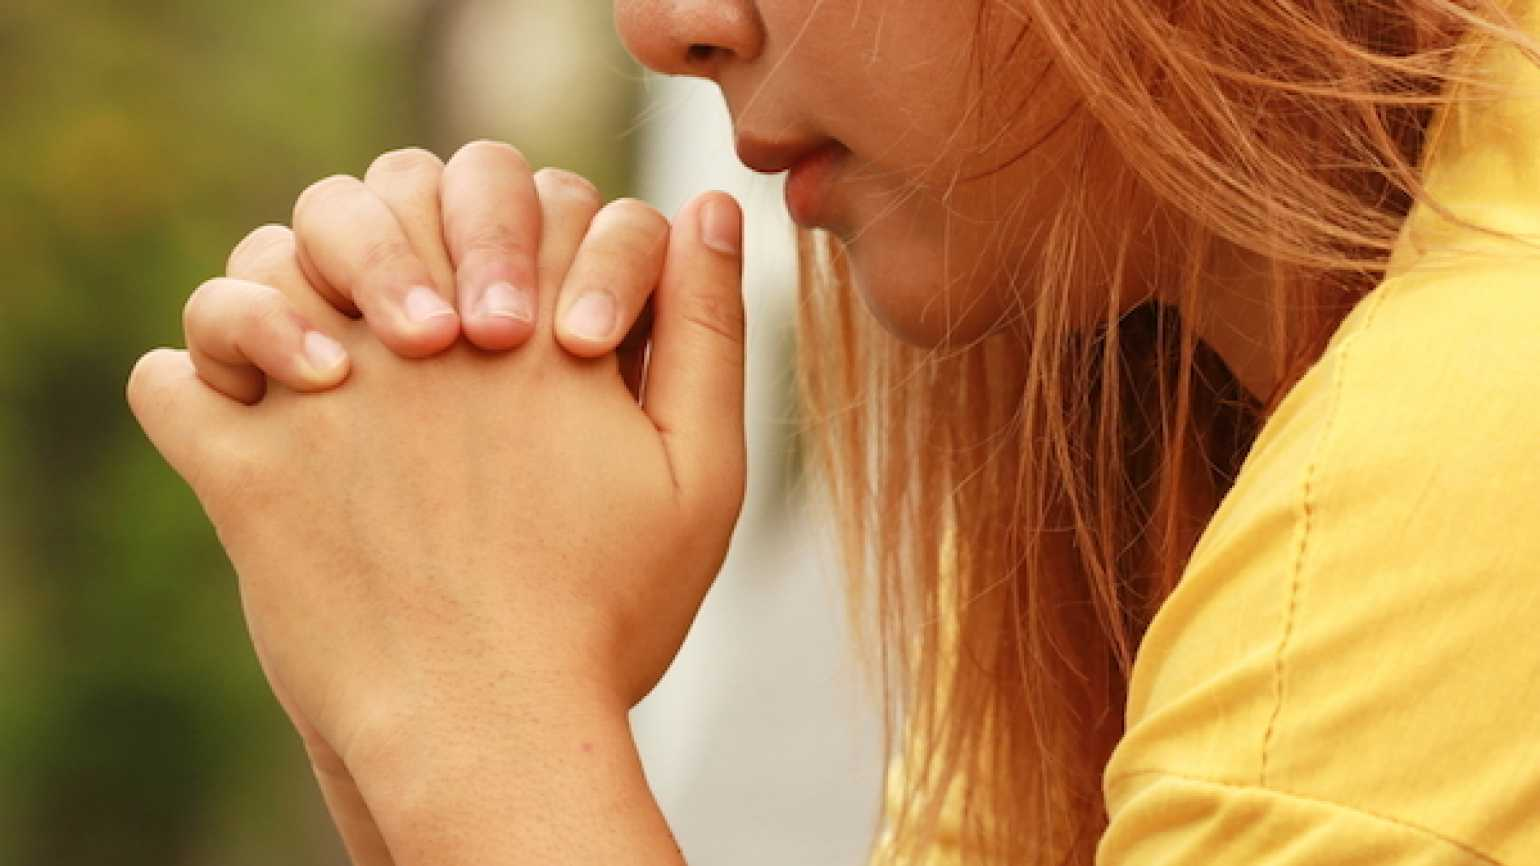 How our faith makes us better people.